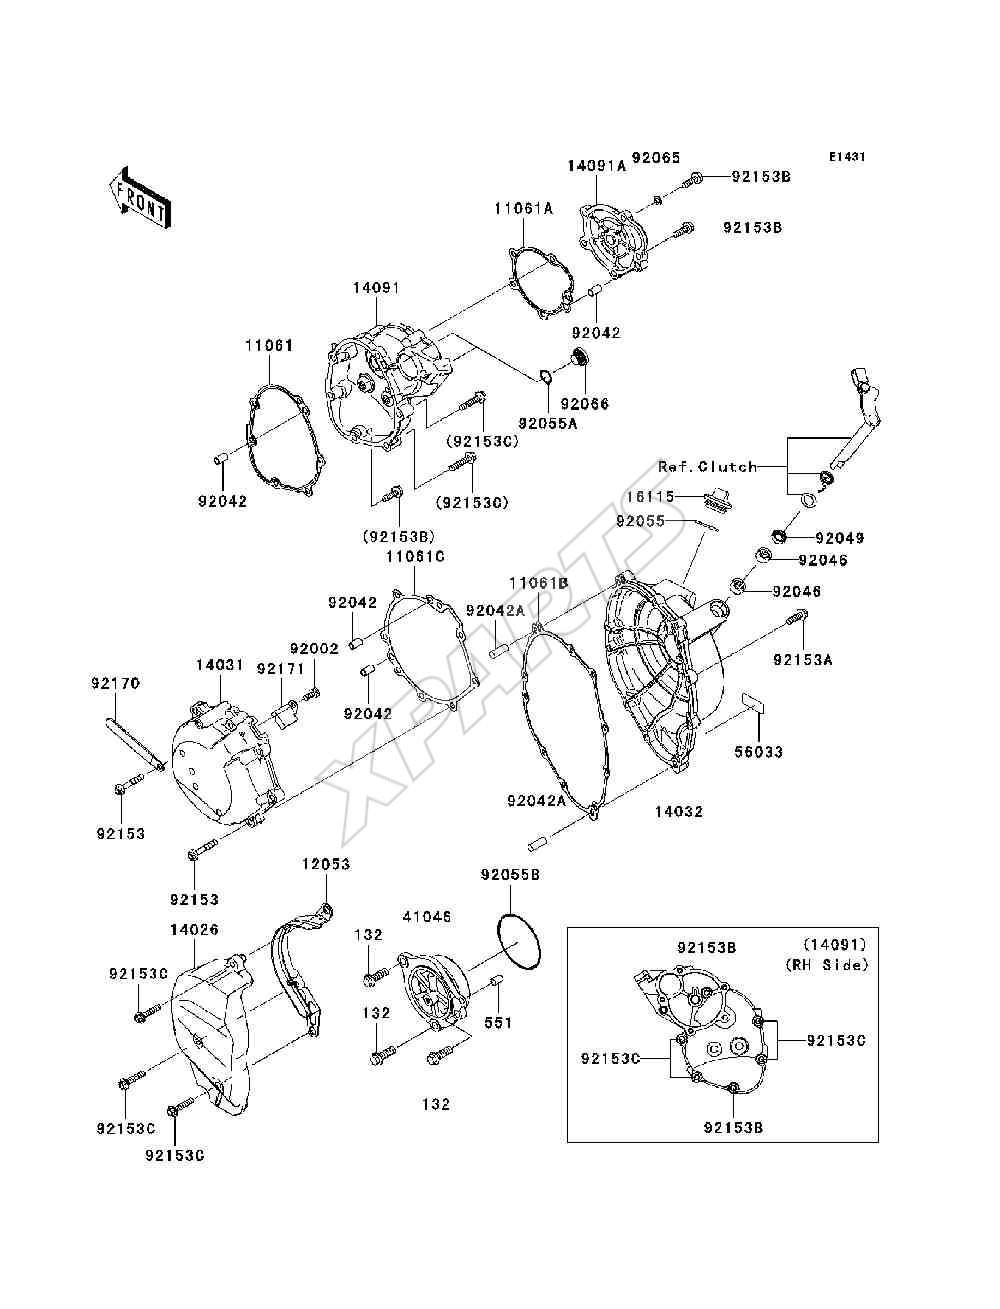 Kawasaki Ninja Zx 10r Zx1000 D6f Fra 2006 Originale Reservedele Motorcycle Parts Kx65a6f Kx65 Engine Covers Diagram Billede Til Varegruppe